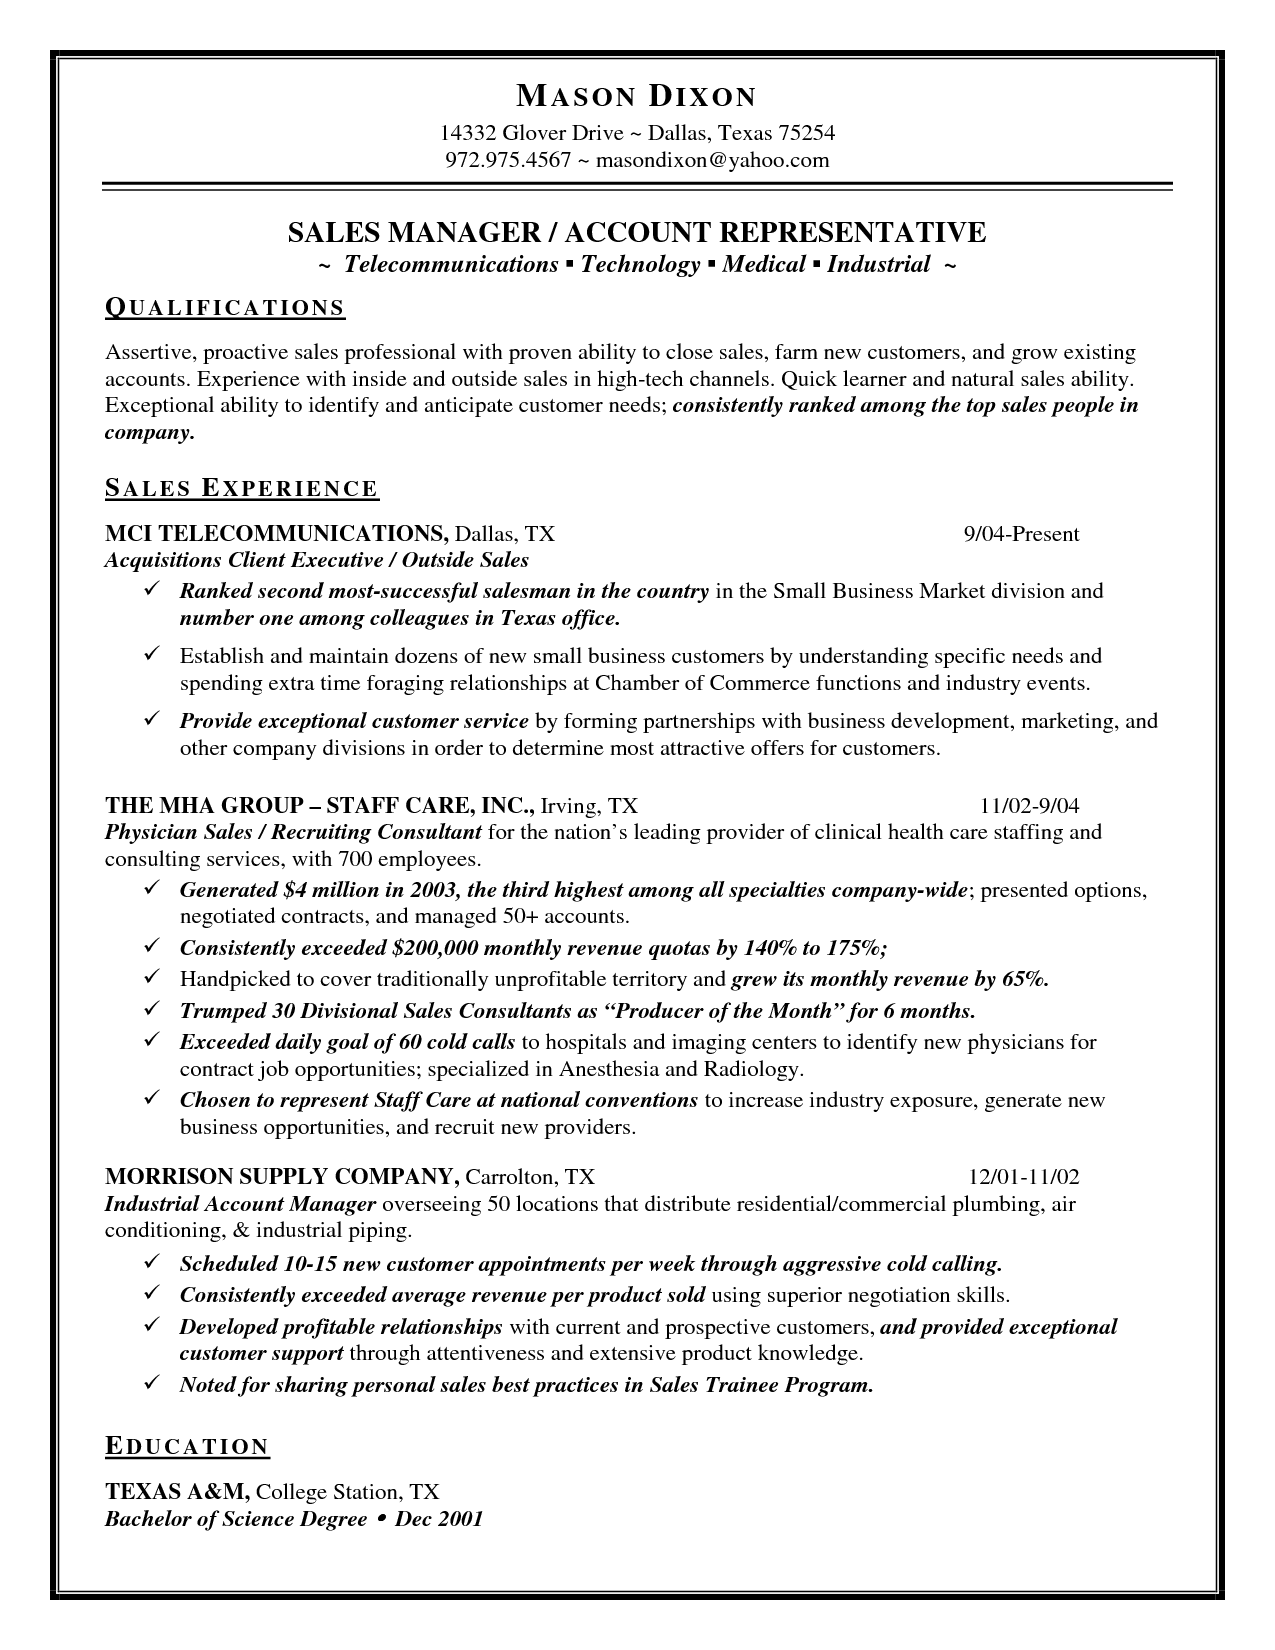 quick learner resume inside sales resume sample mason dixon 14332 glover drive dallas